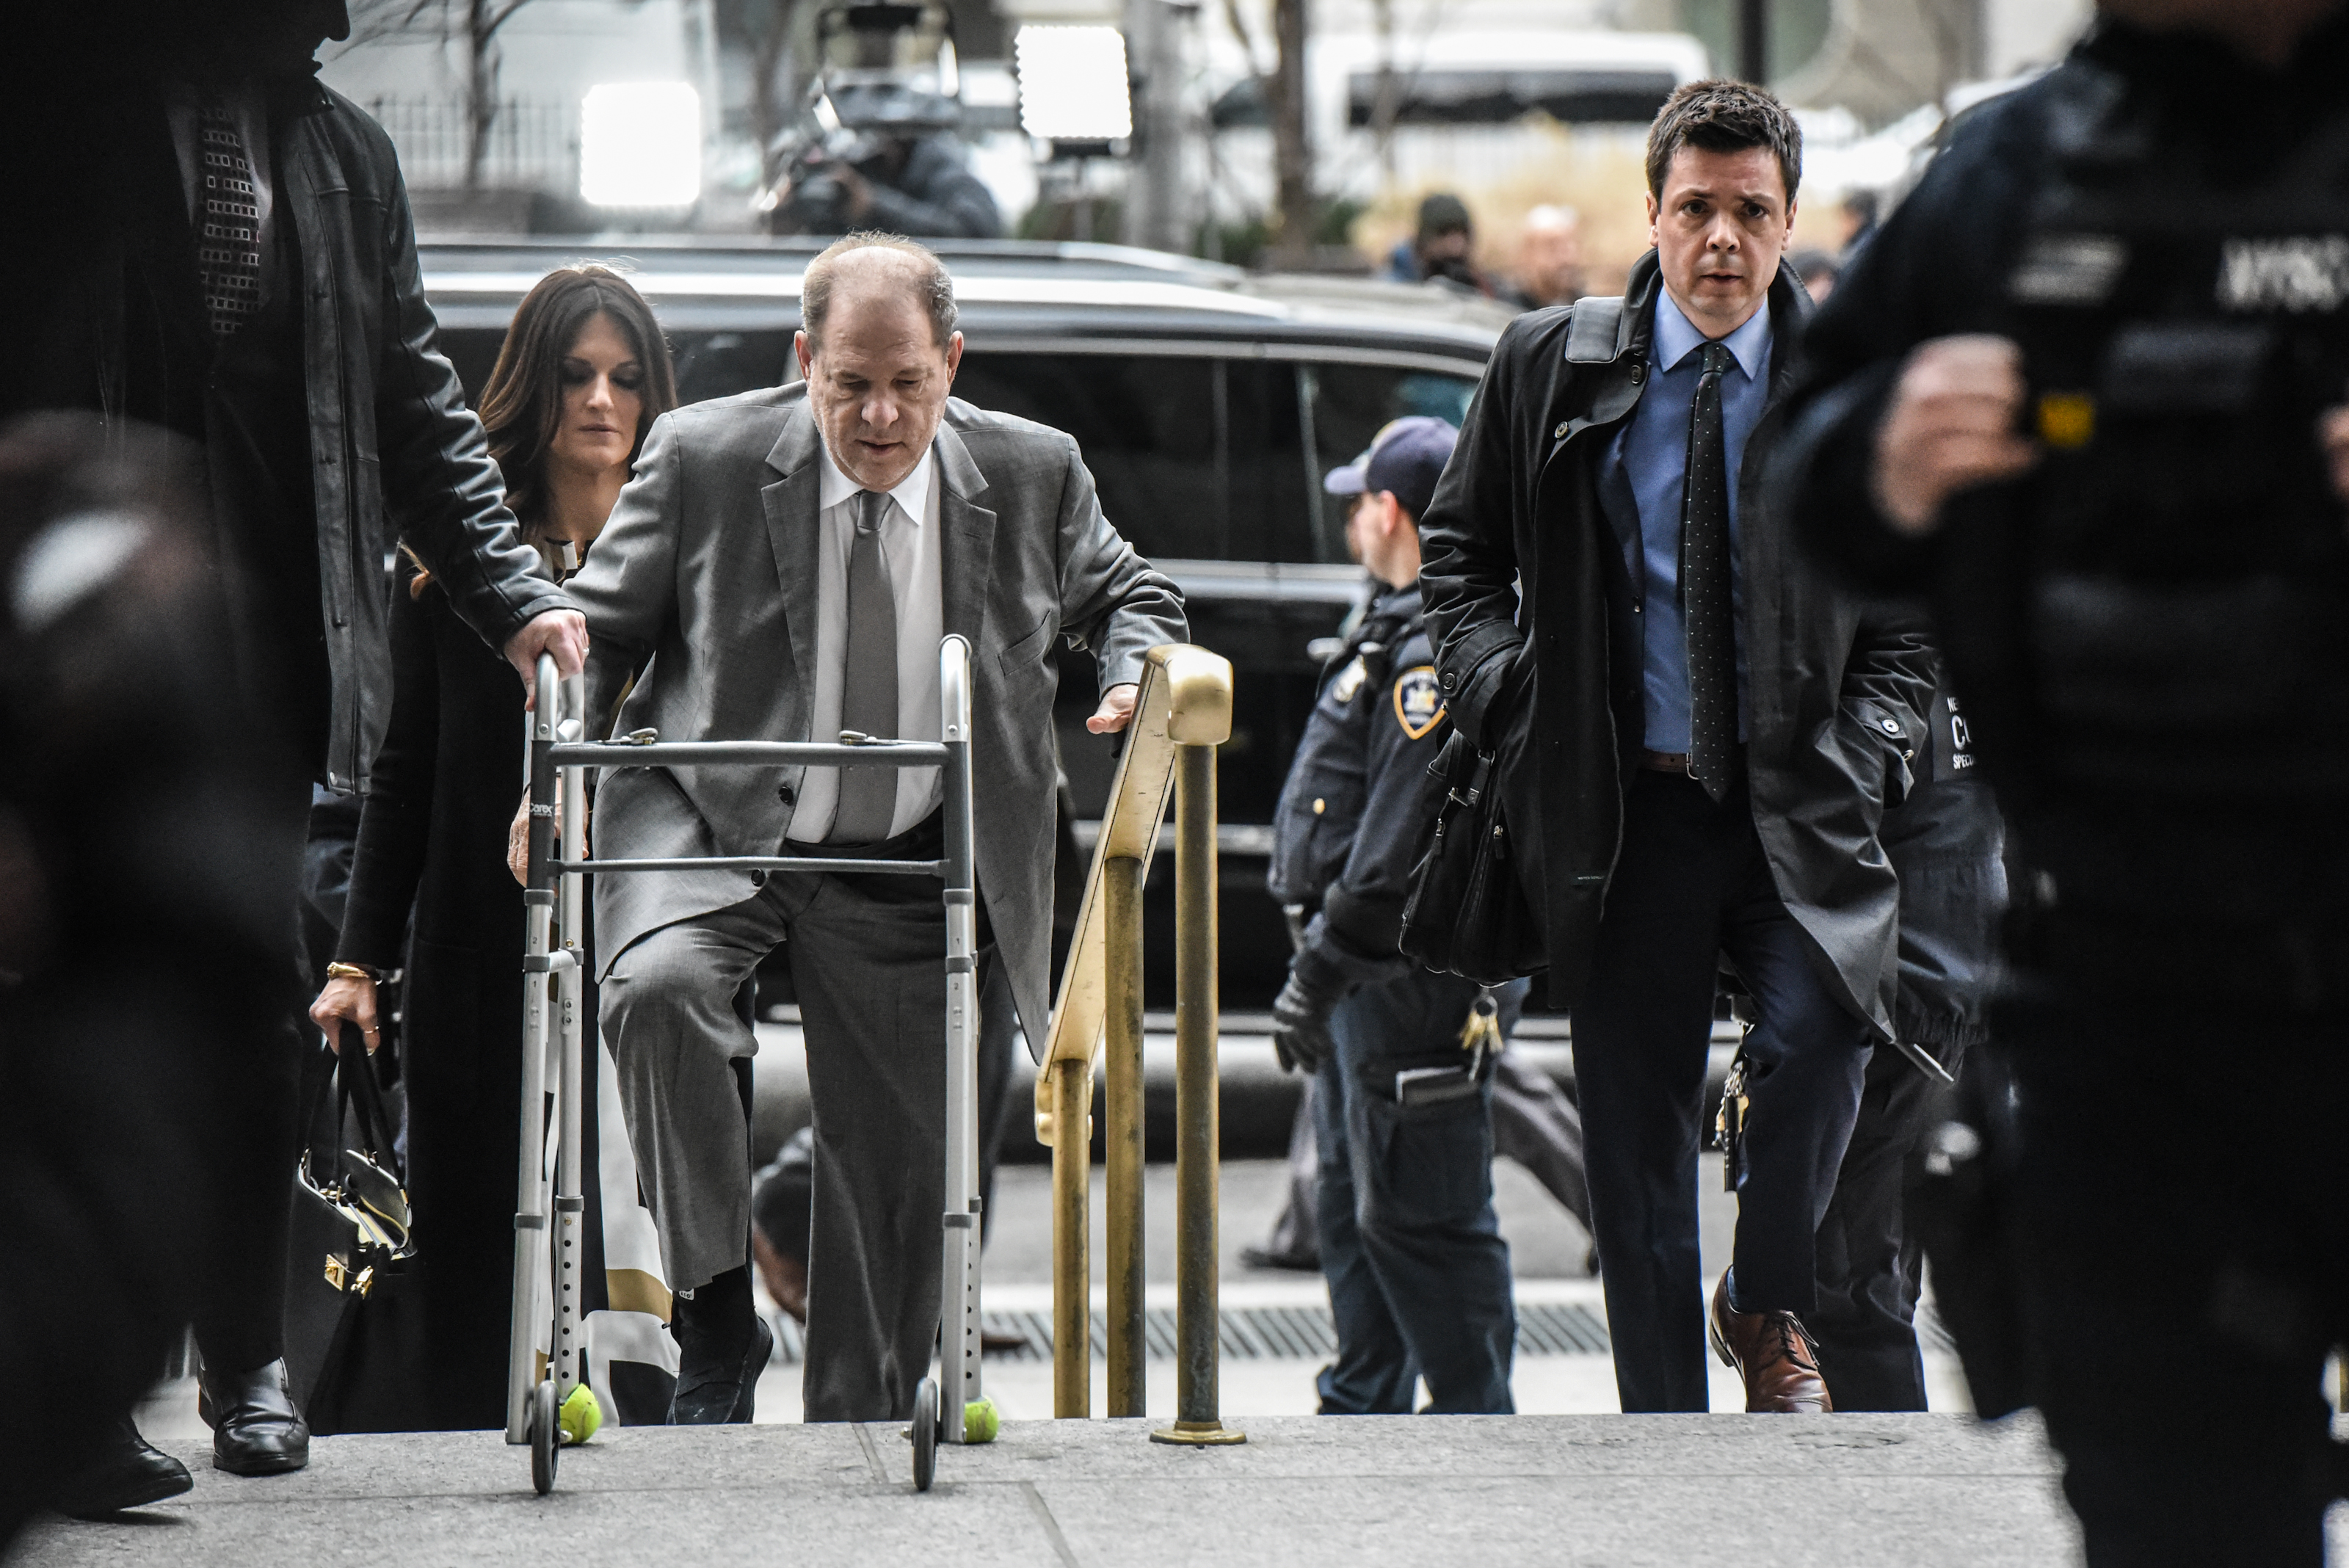 Harvey Weinstein arrives at New York City criminal court for his sex crimes trial on January 7, 2020 in New York City. Weinstein, a movie producer whose alleged sexual misconduct helped spark the #MeToo movement, pleaded not-guilty on five counts of rape and sexual assault against two unnamed women and faces a possible life sentence in prison. (Photo by Stephanie Keith/Getty Images)